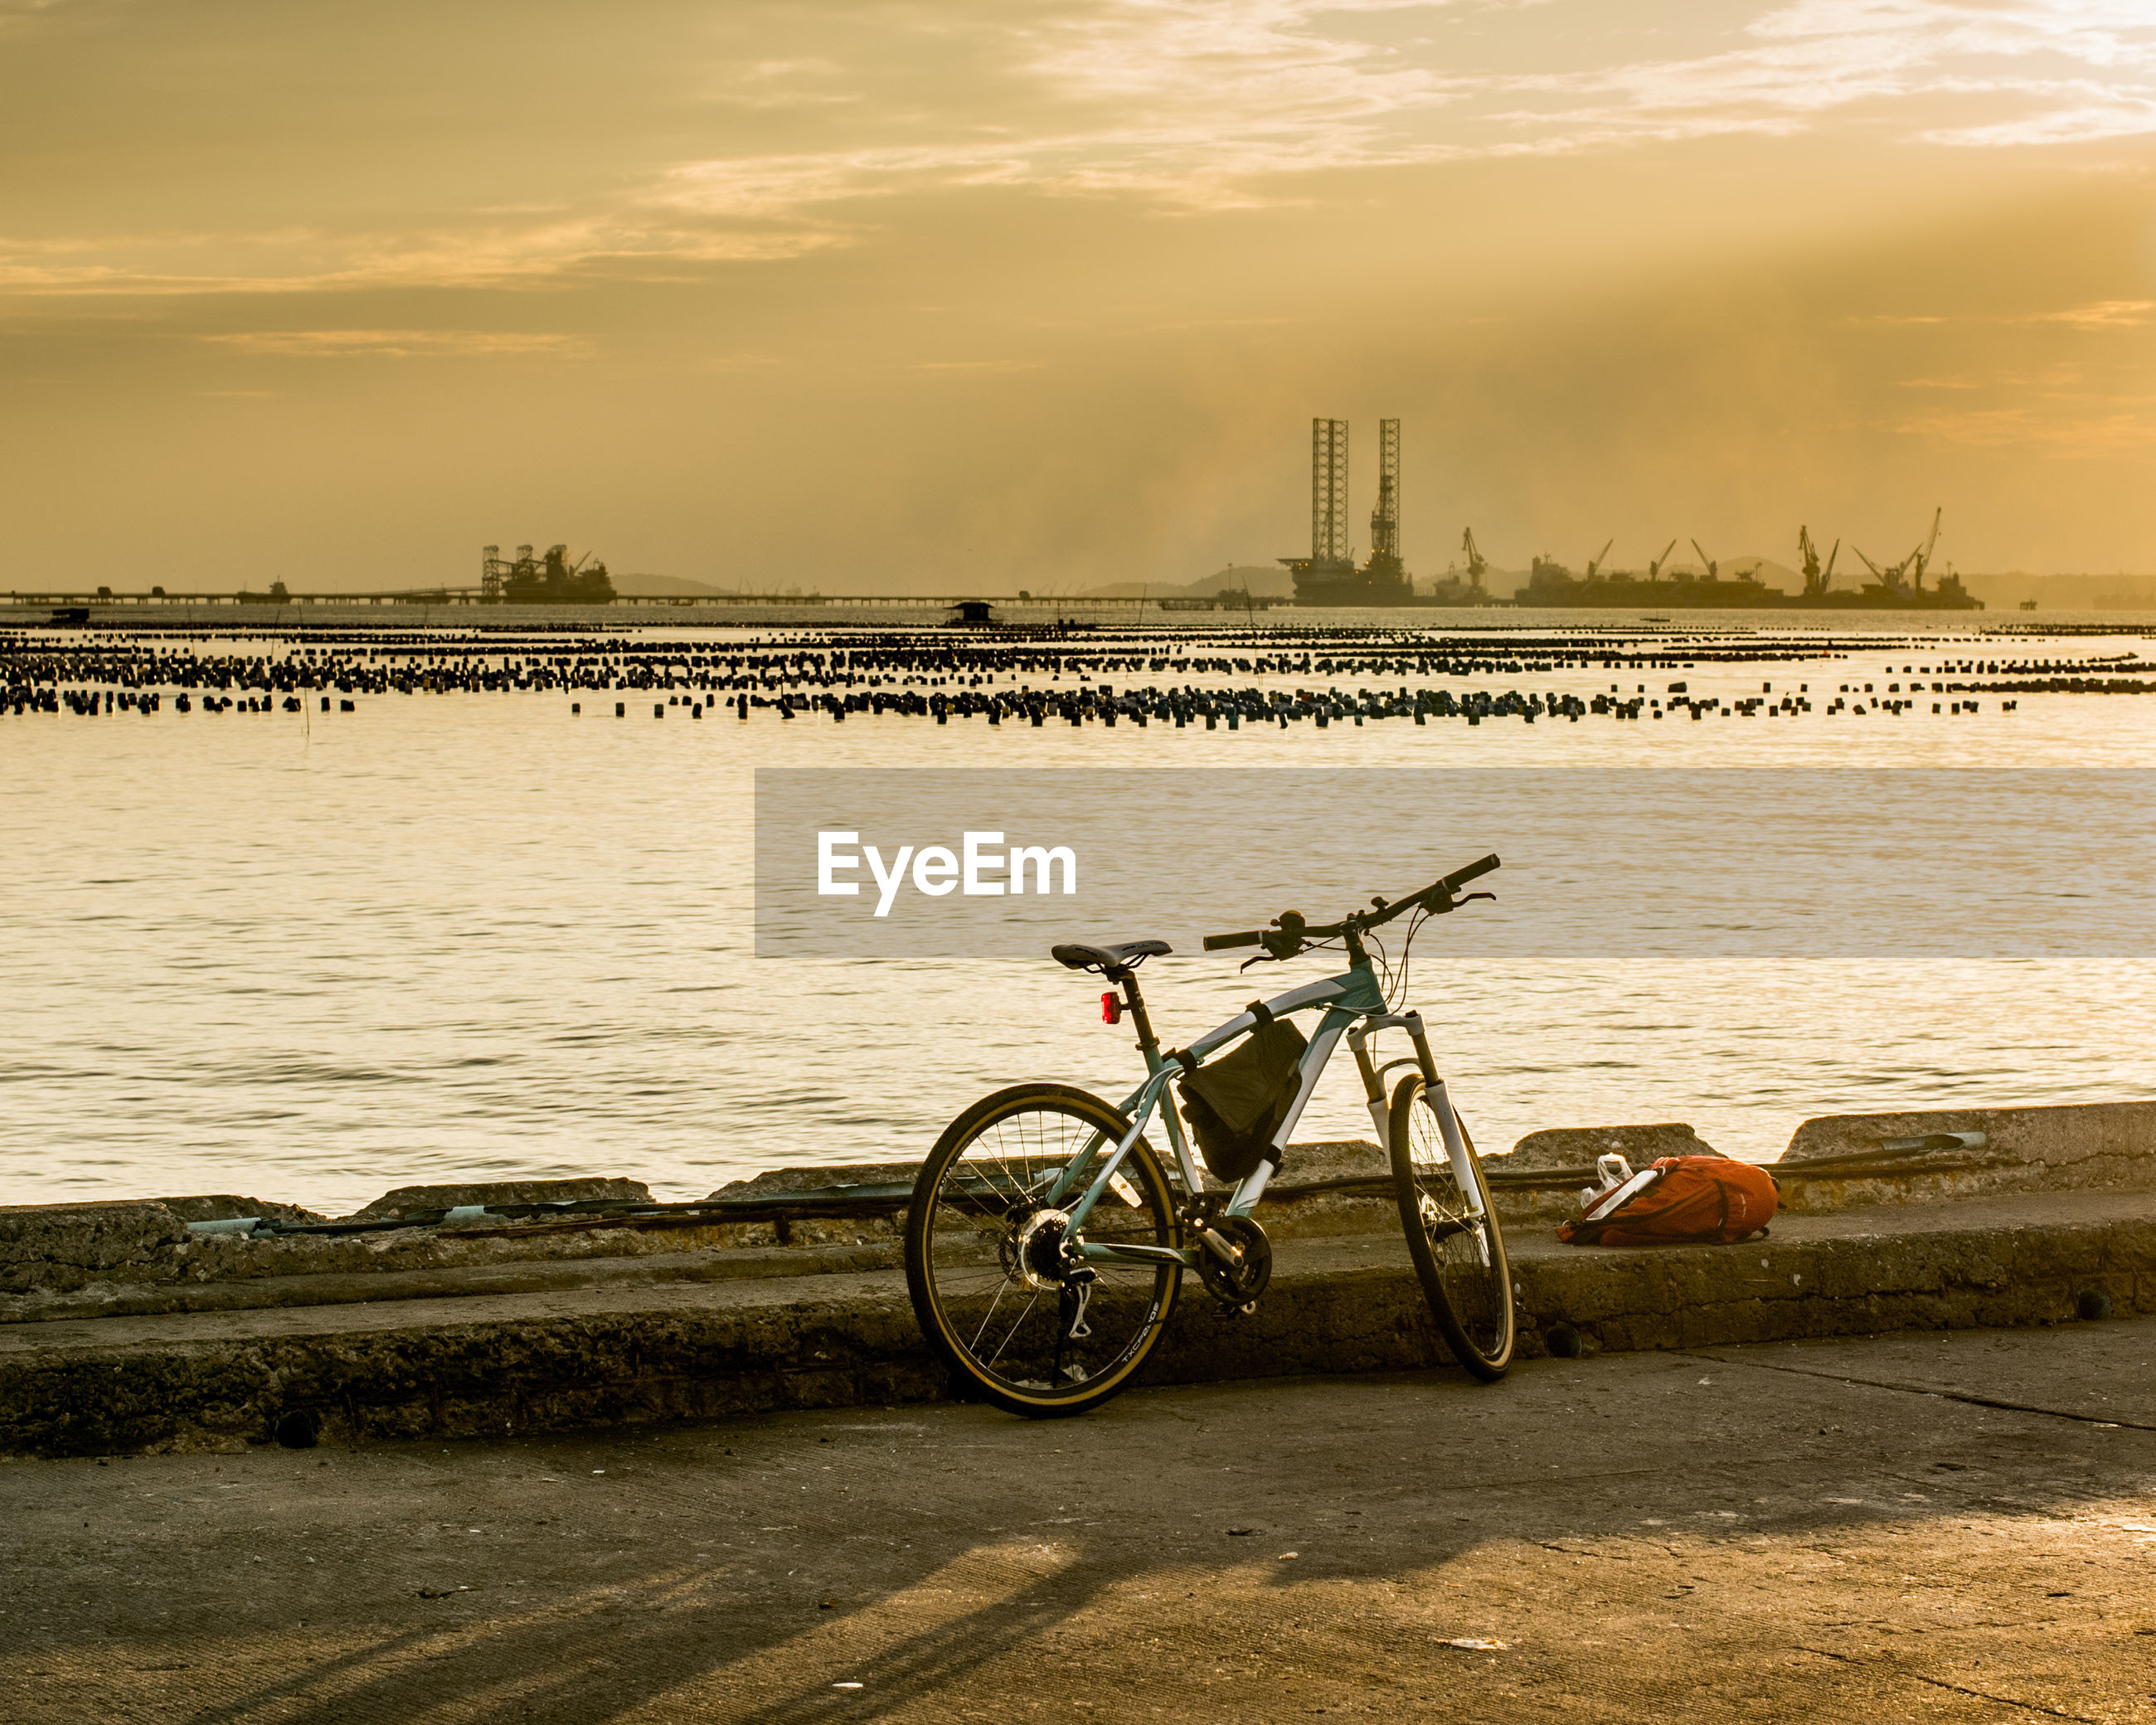 Bicycle parked on beach against cloudy sky